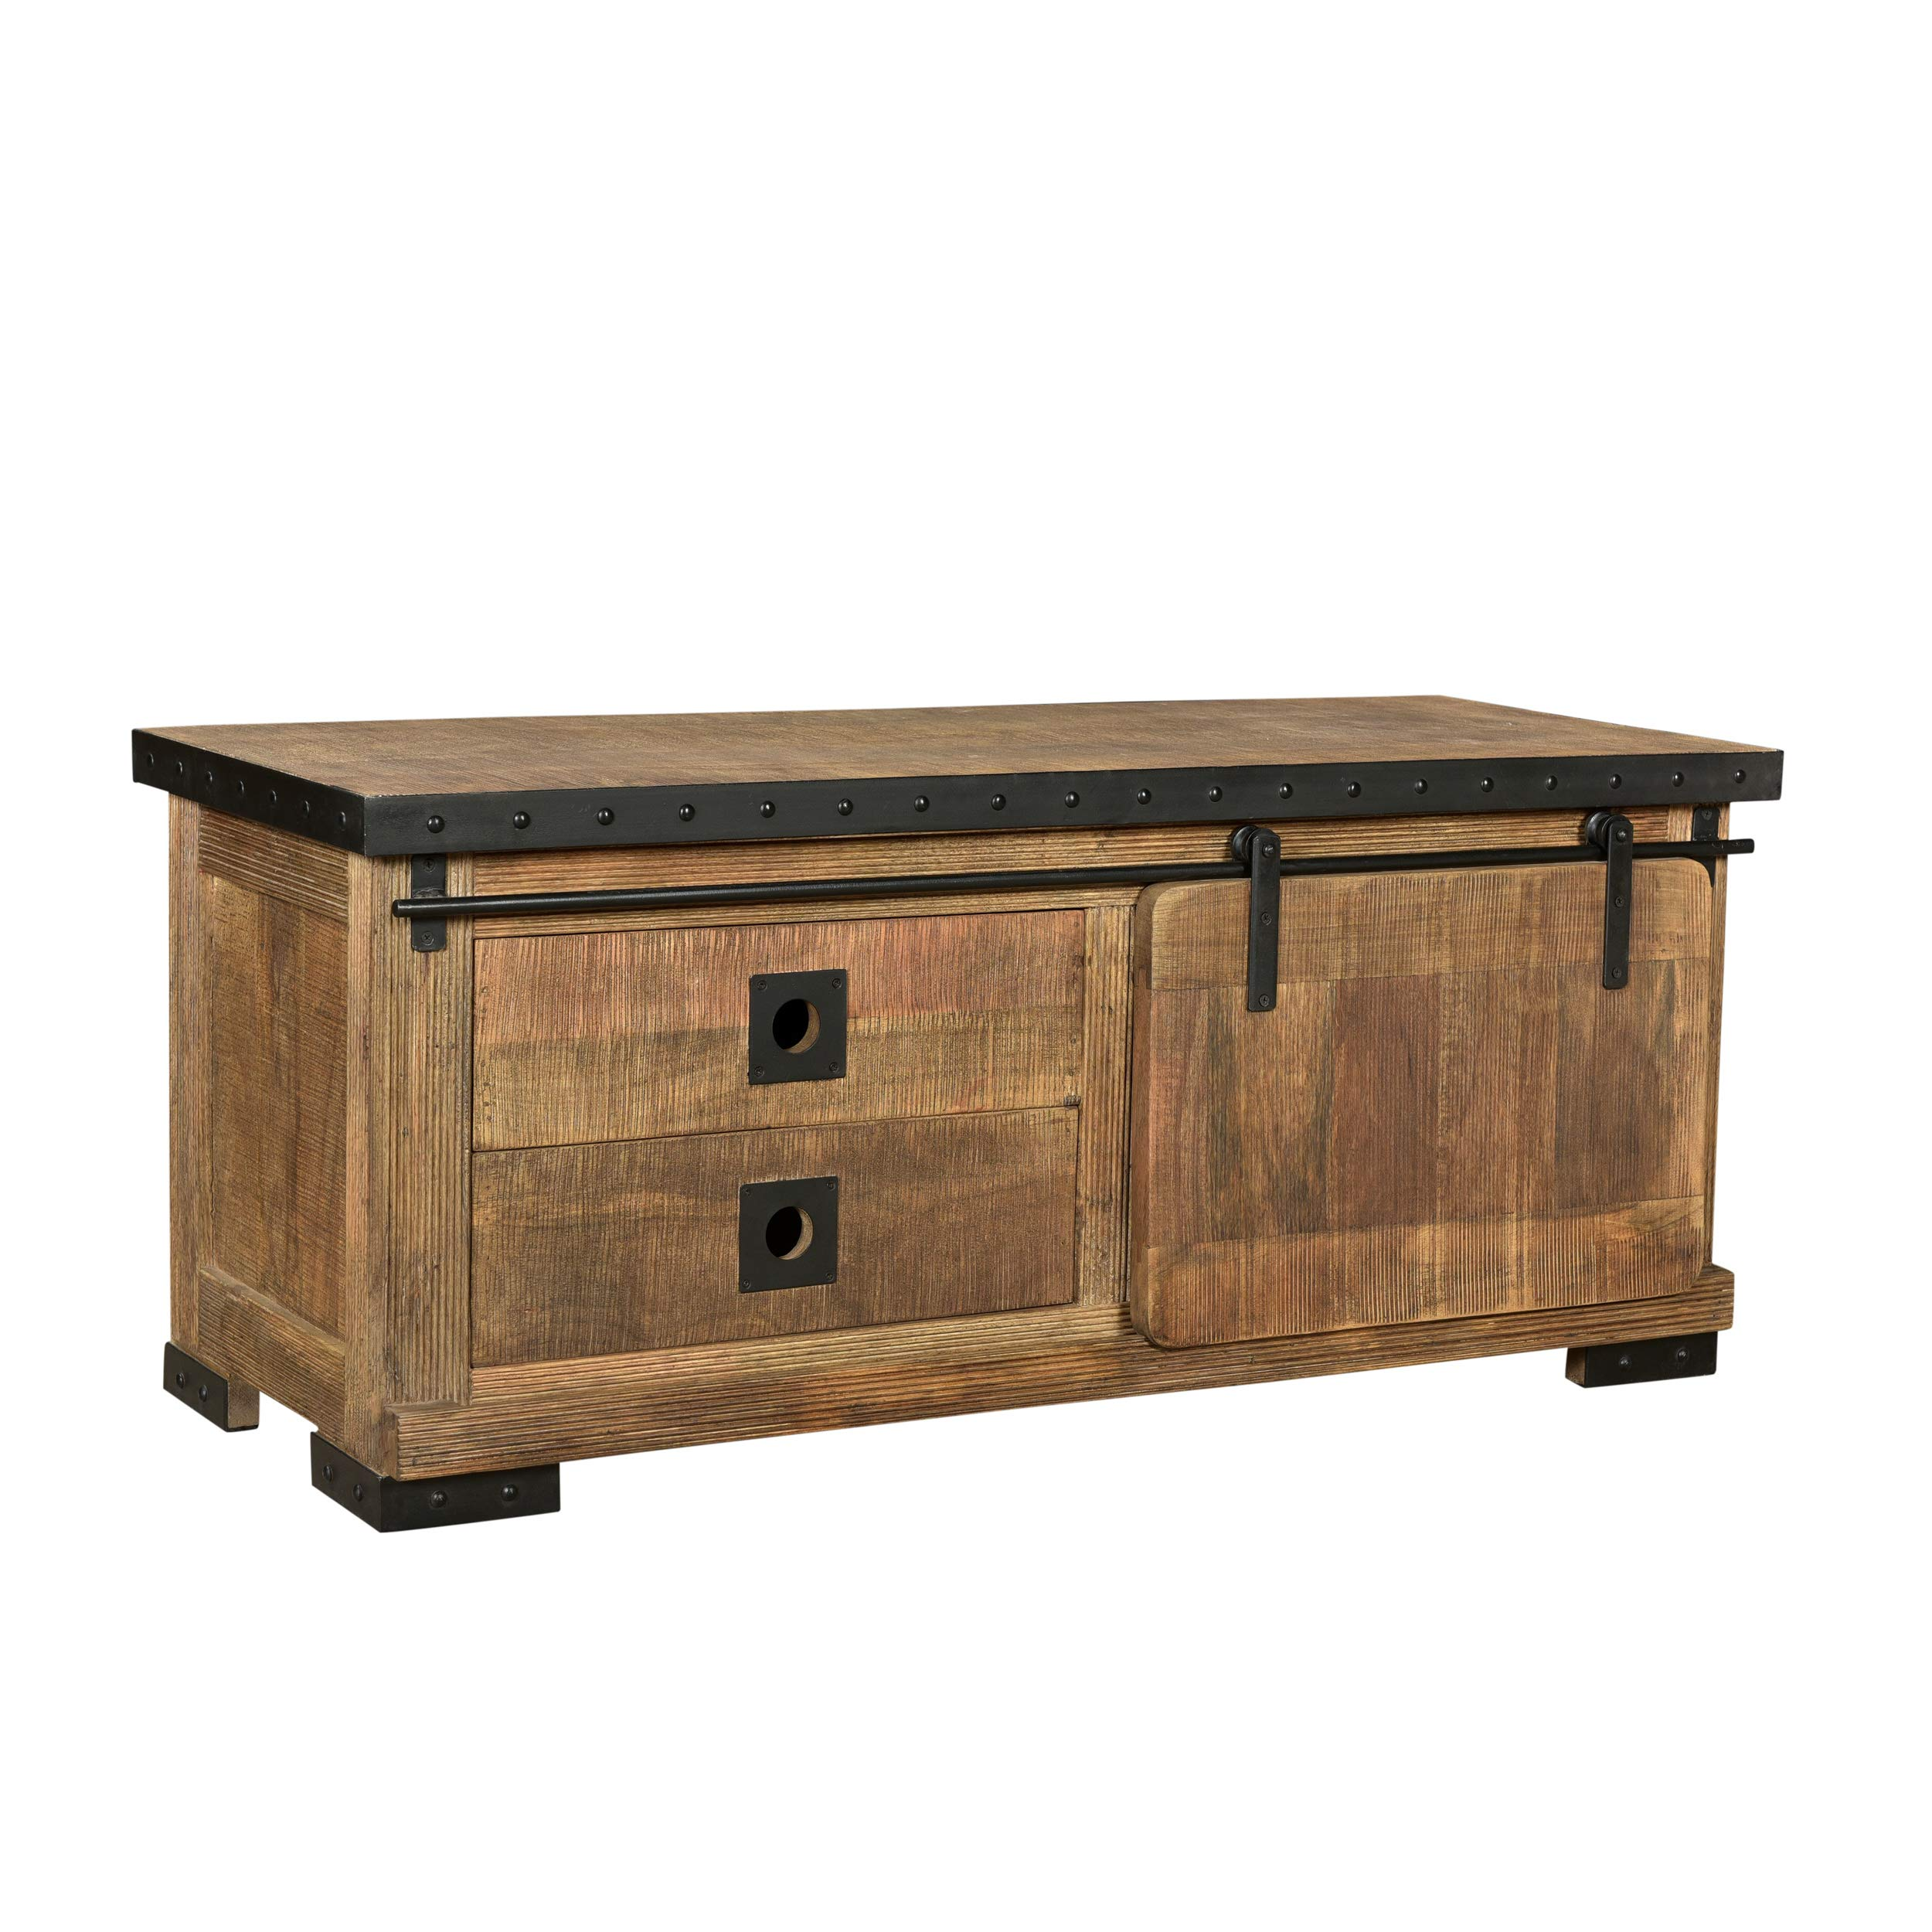 Christopher Knight Home Mavis Modern Industrial Mango Wood TV Stand, Natural Finish, Black by Christopher Knight Home